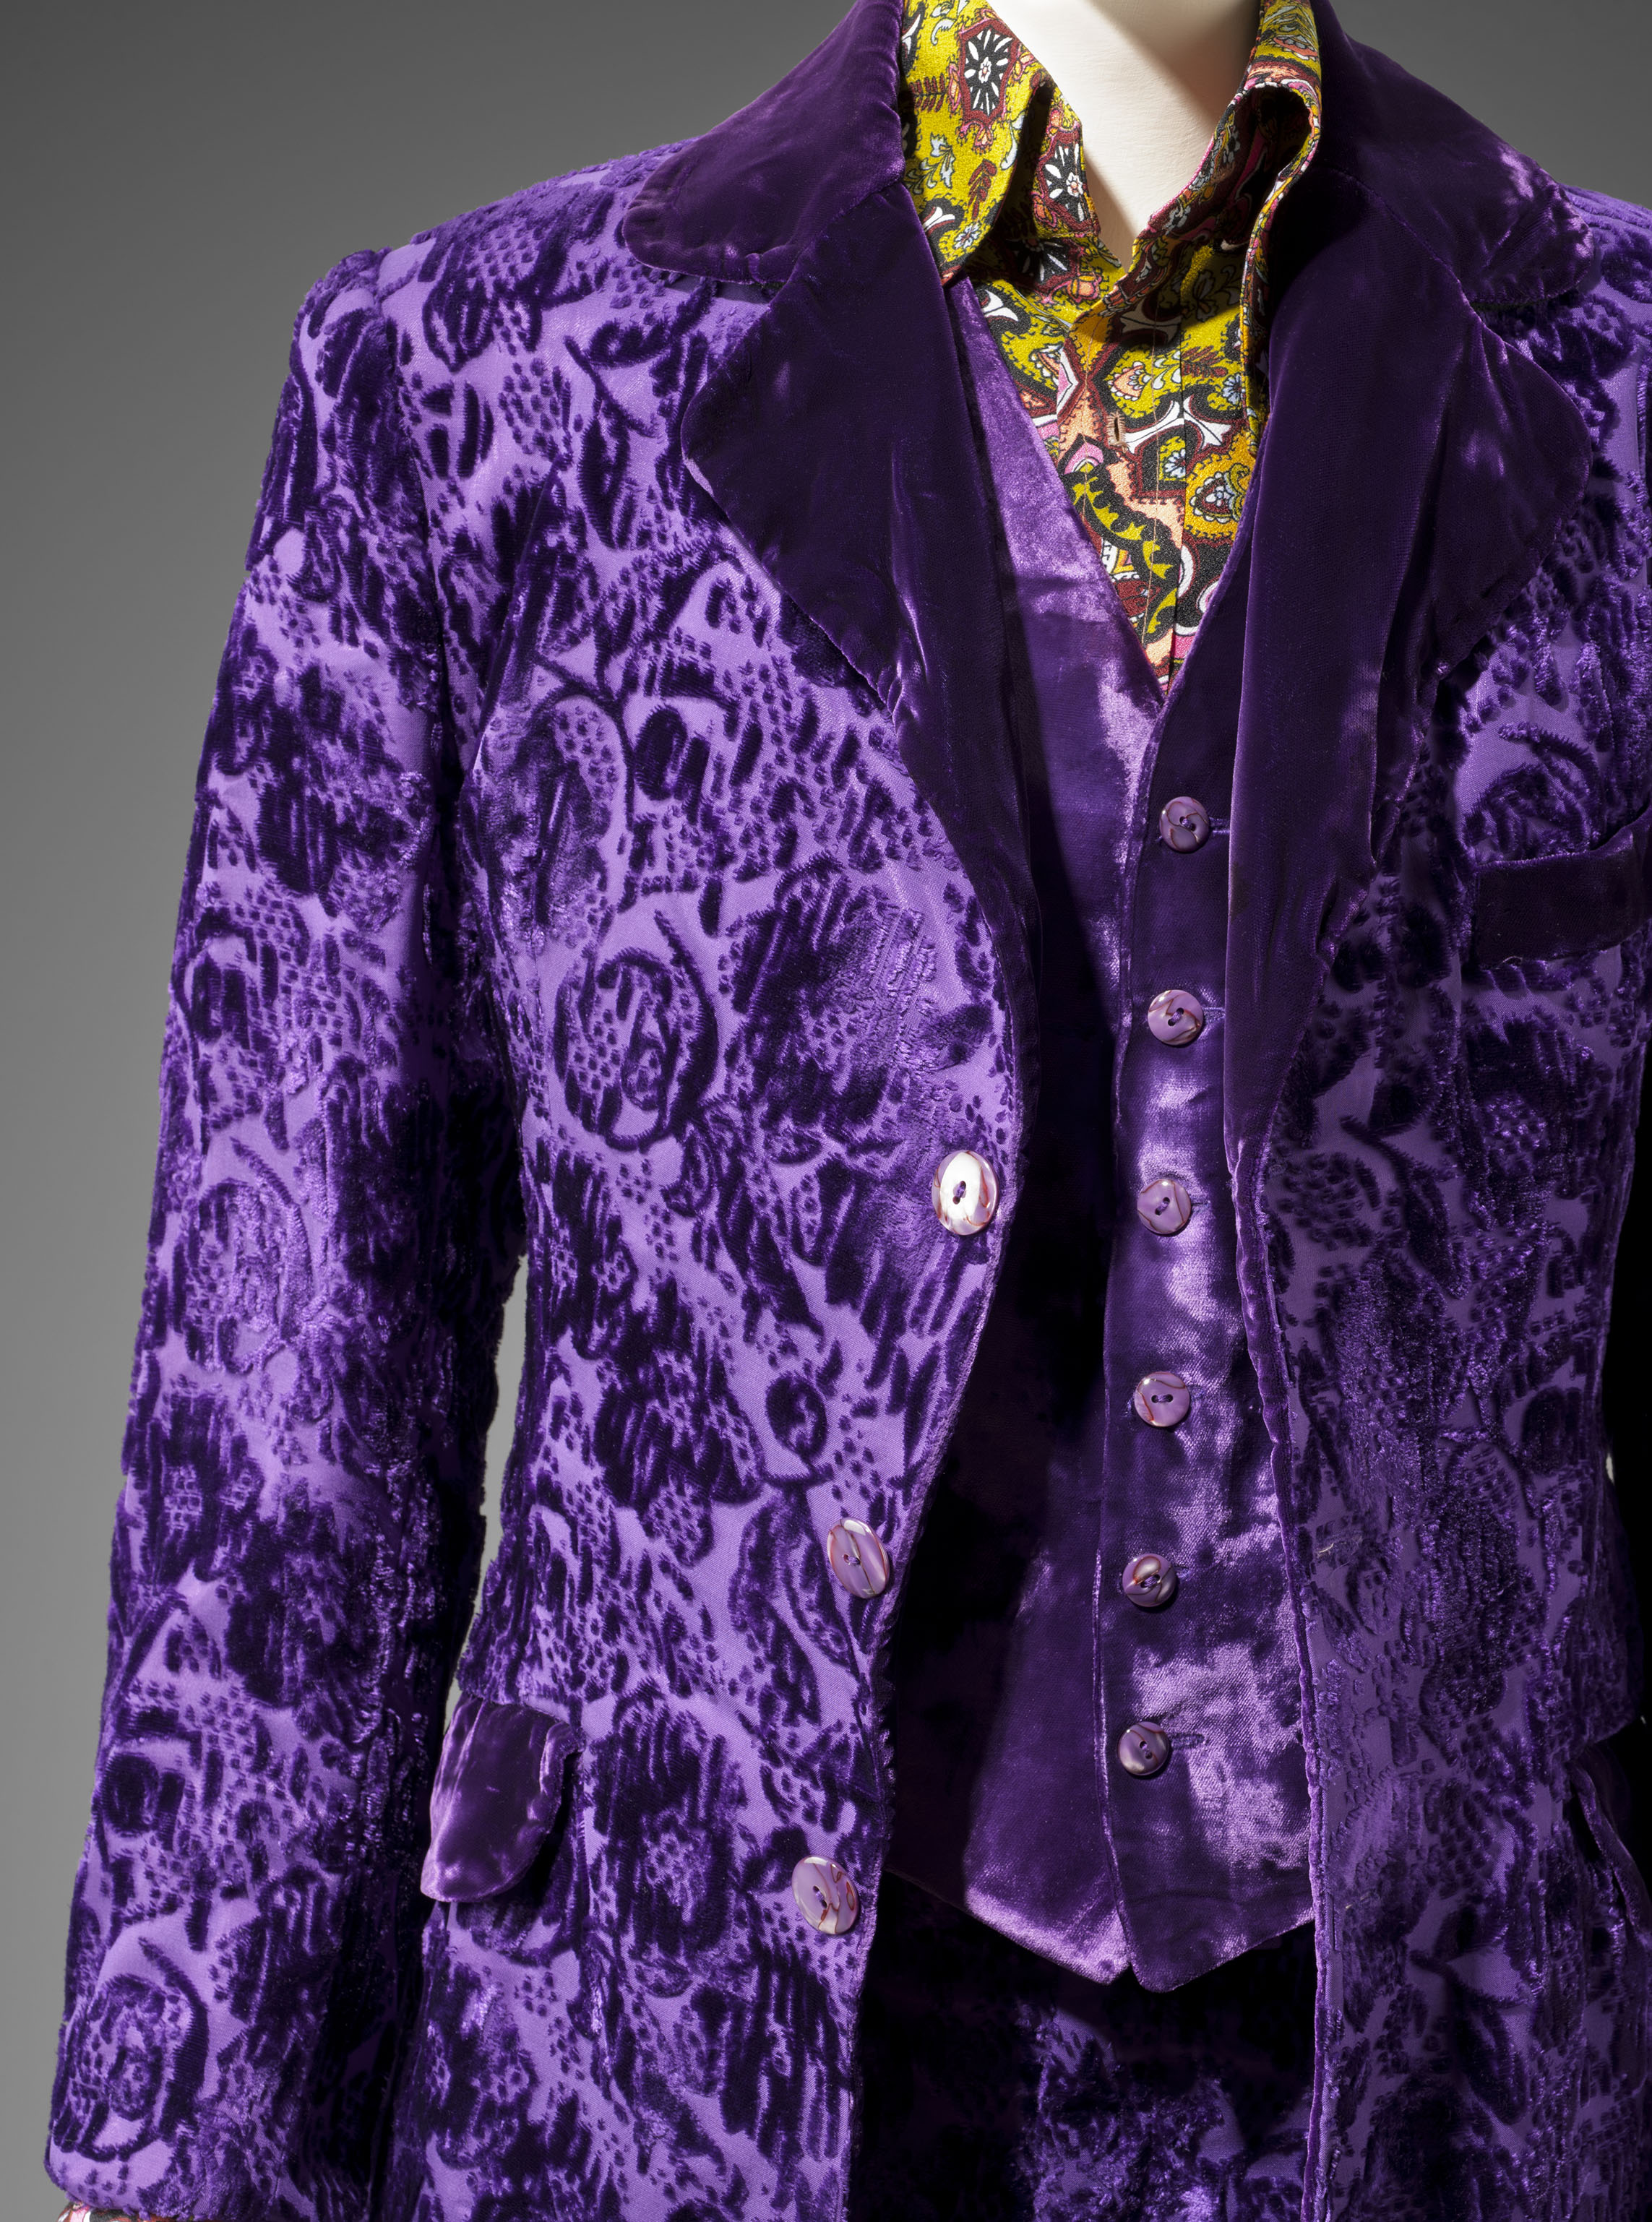 Gene Krell era Granny Takes A Trip three piece suit in purple velvet brocade, from the Museum of Fine Arts, Boston (MFA) Hippie Chic exhibition, 2013